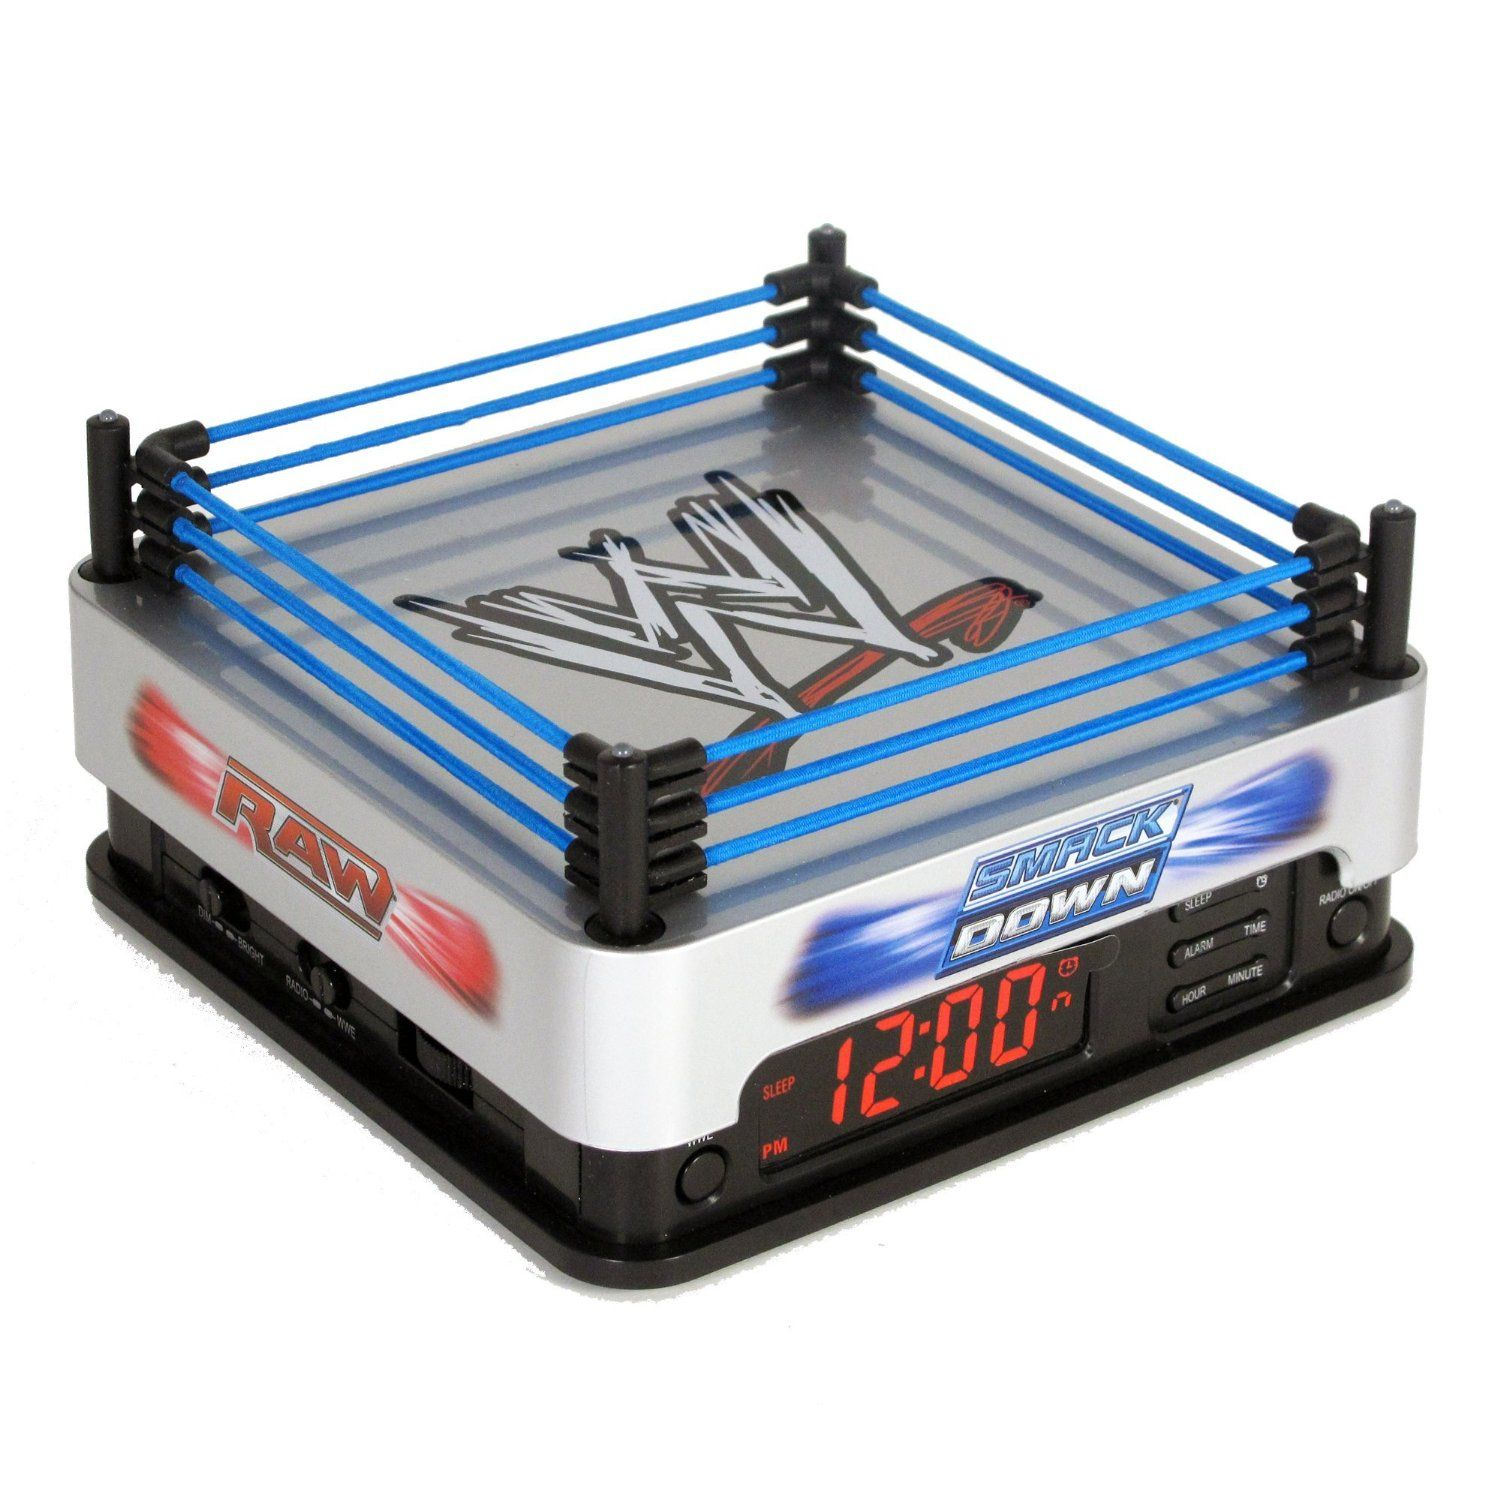 wwe ring alarm clock this has to be by far the coolest themed